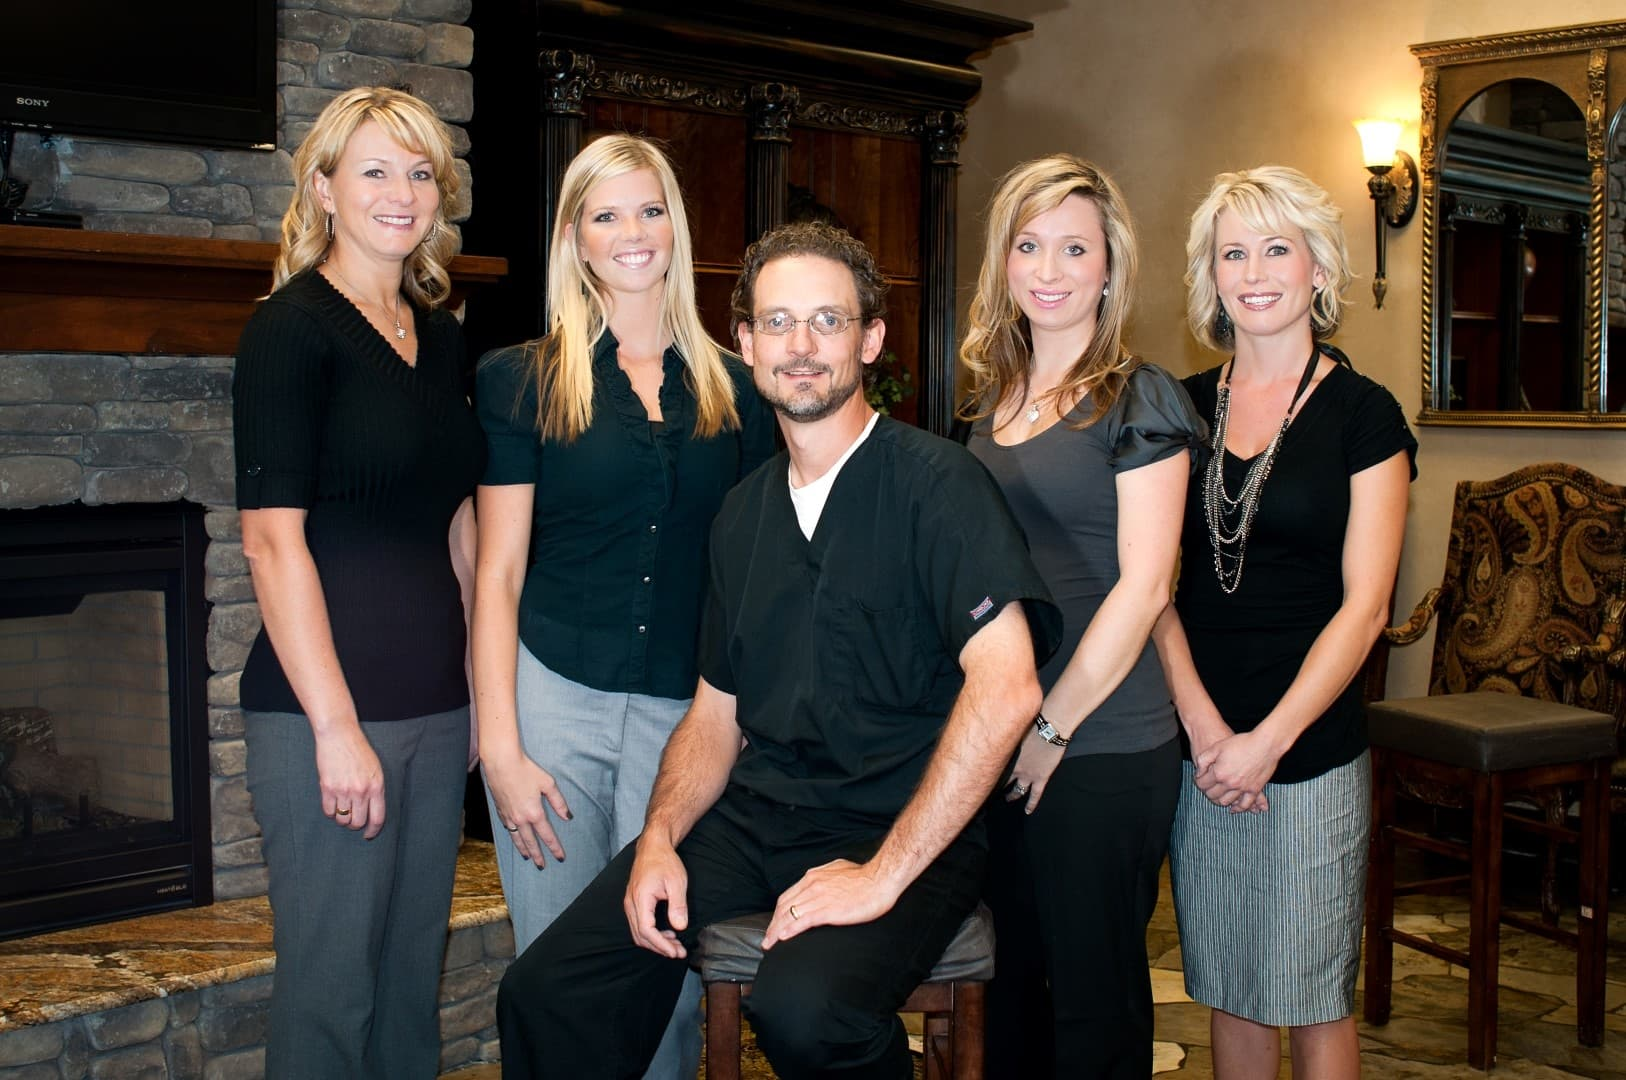 dr fryer plastic surgery utah photo - 1